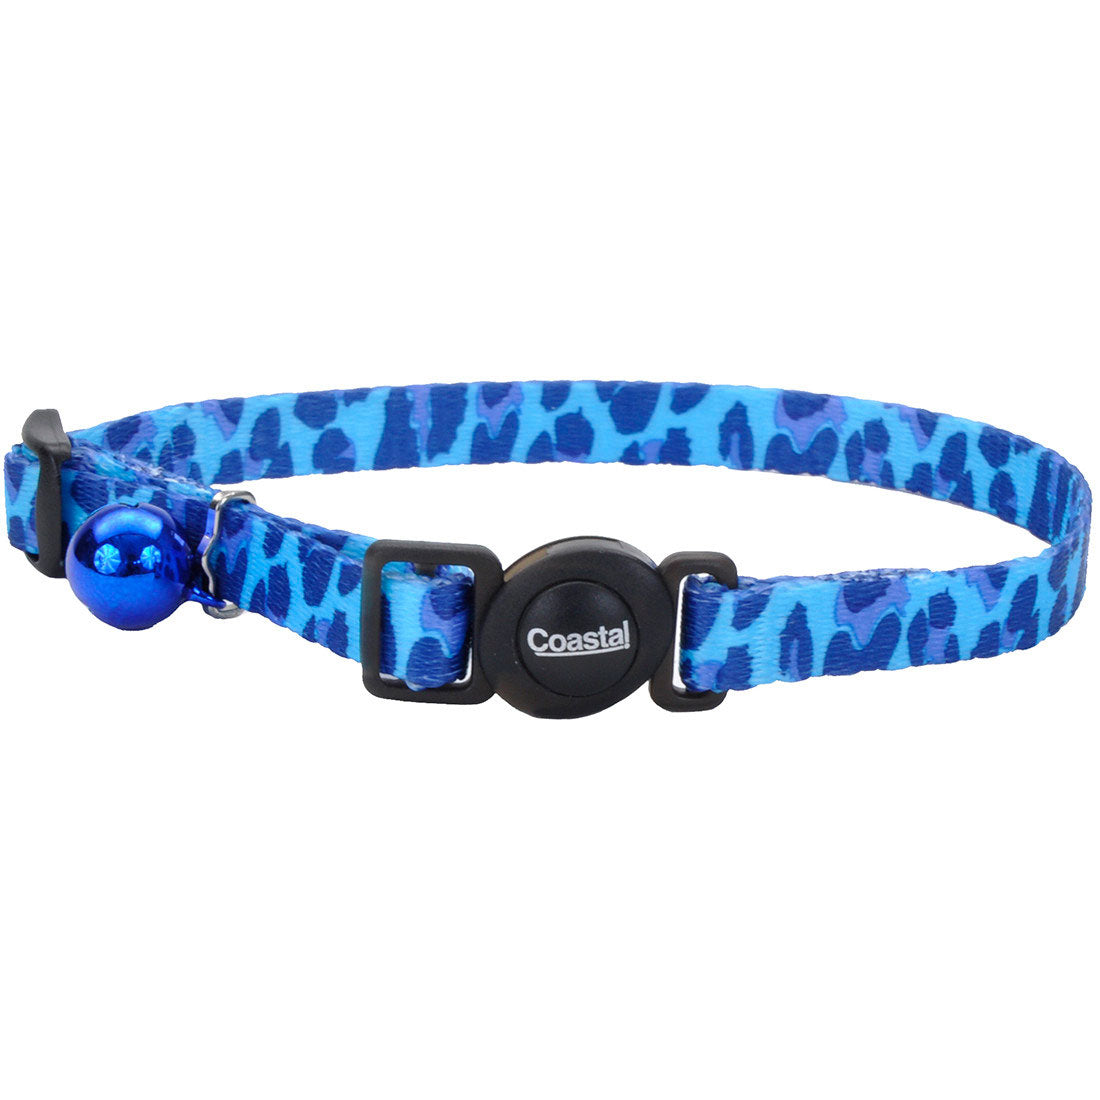 Coastal Pet Products Safe Cat® Fashion Adjustable Breakaway Collar in Blue Leopard